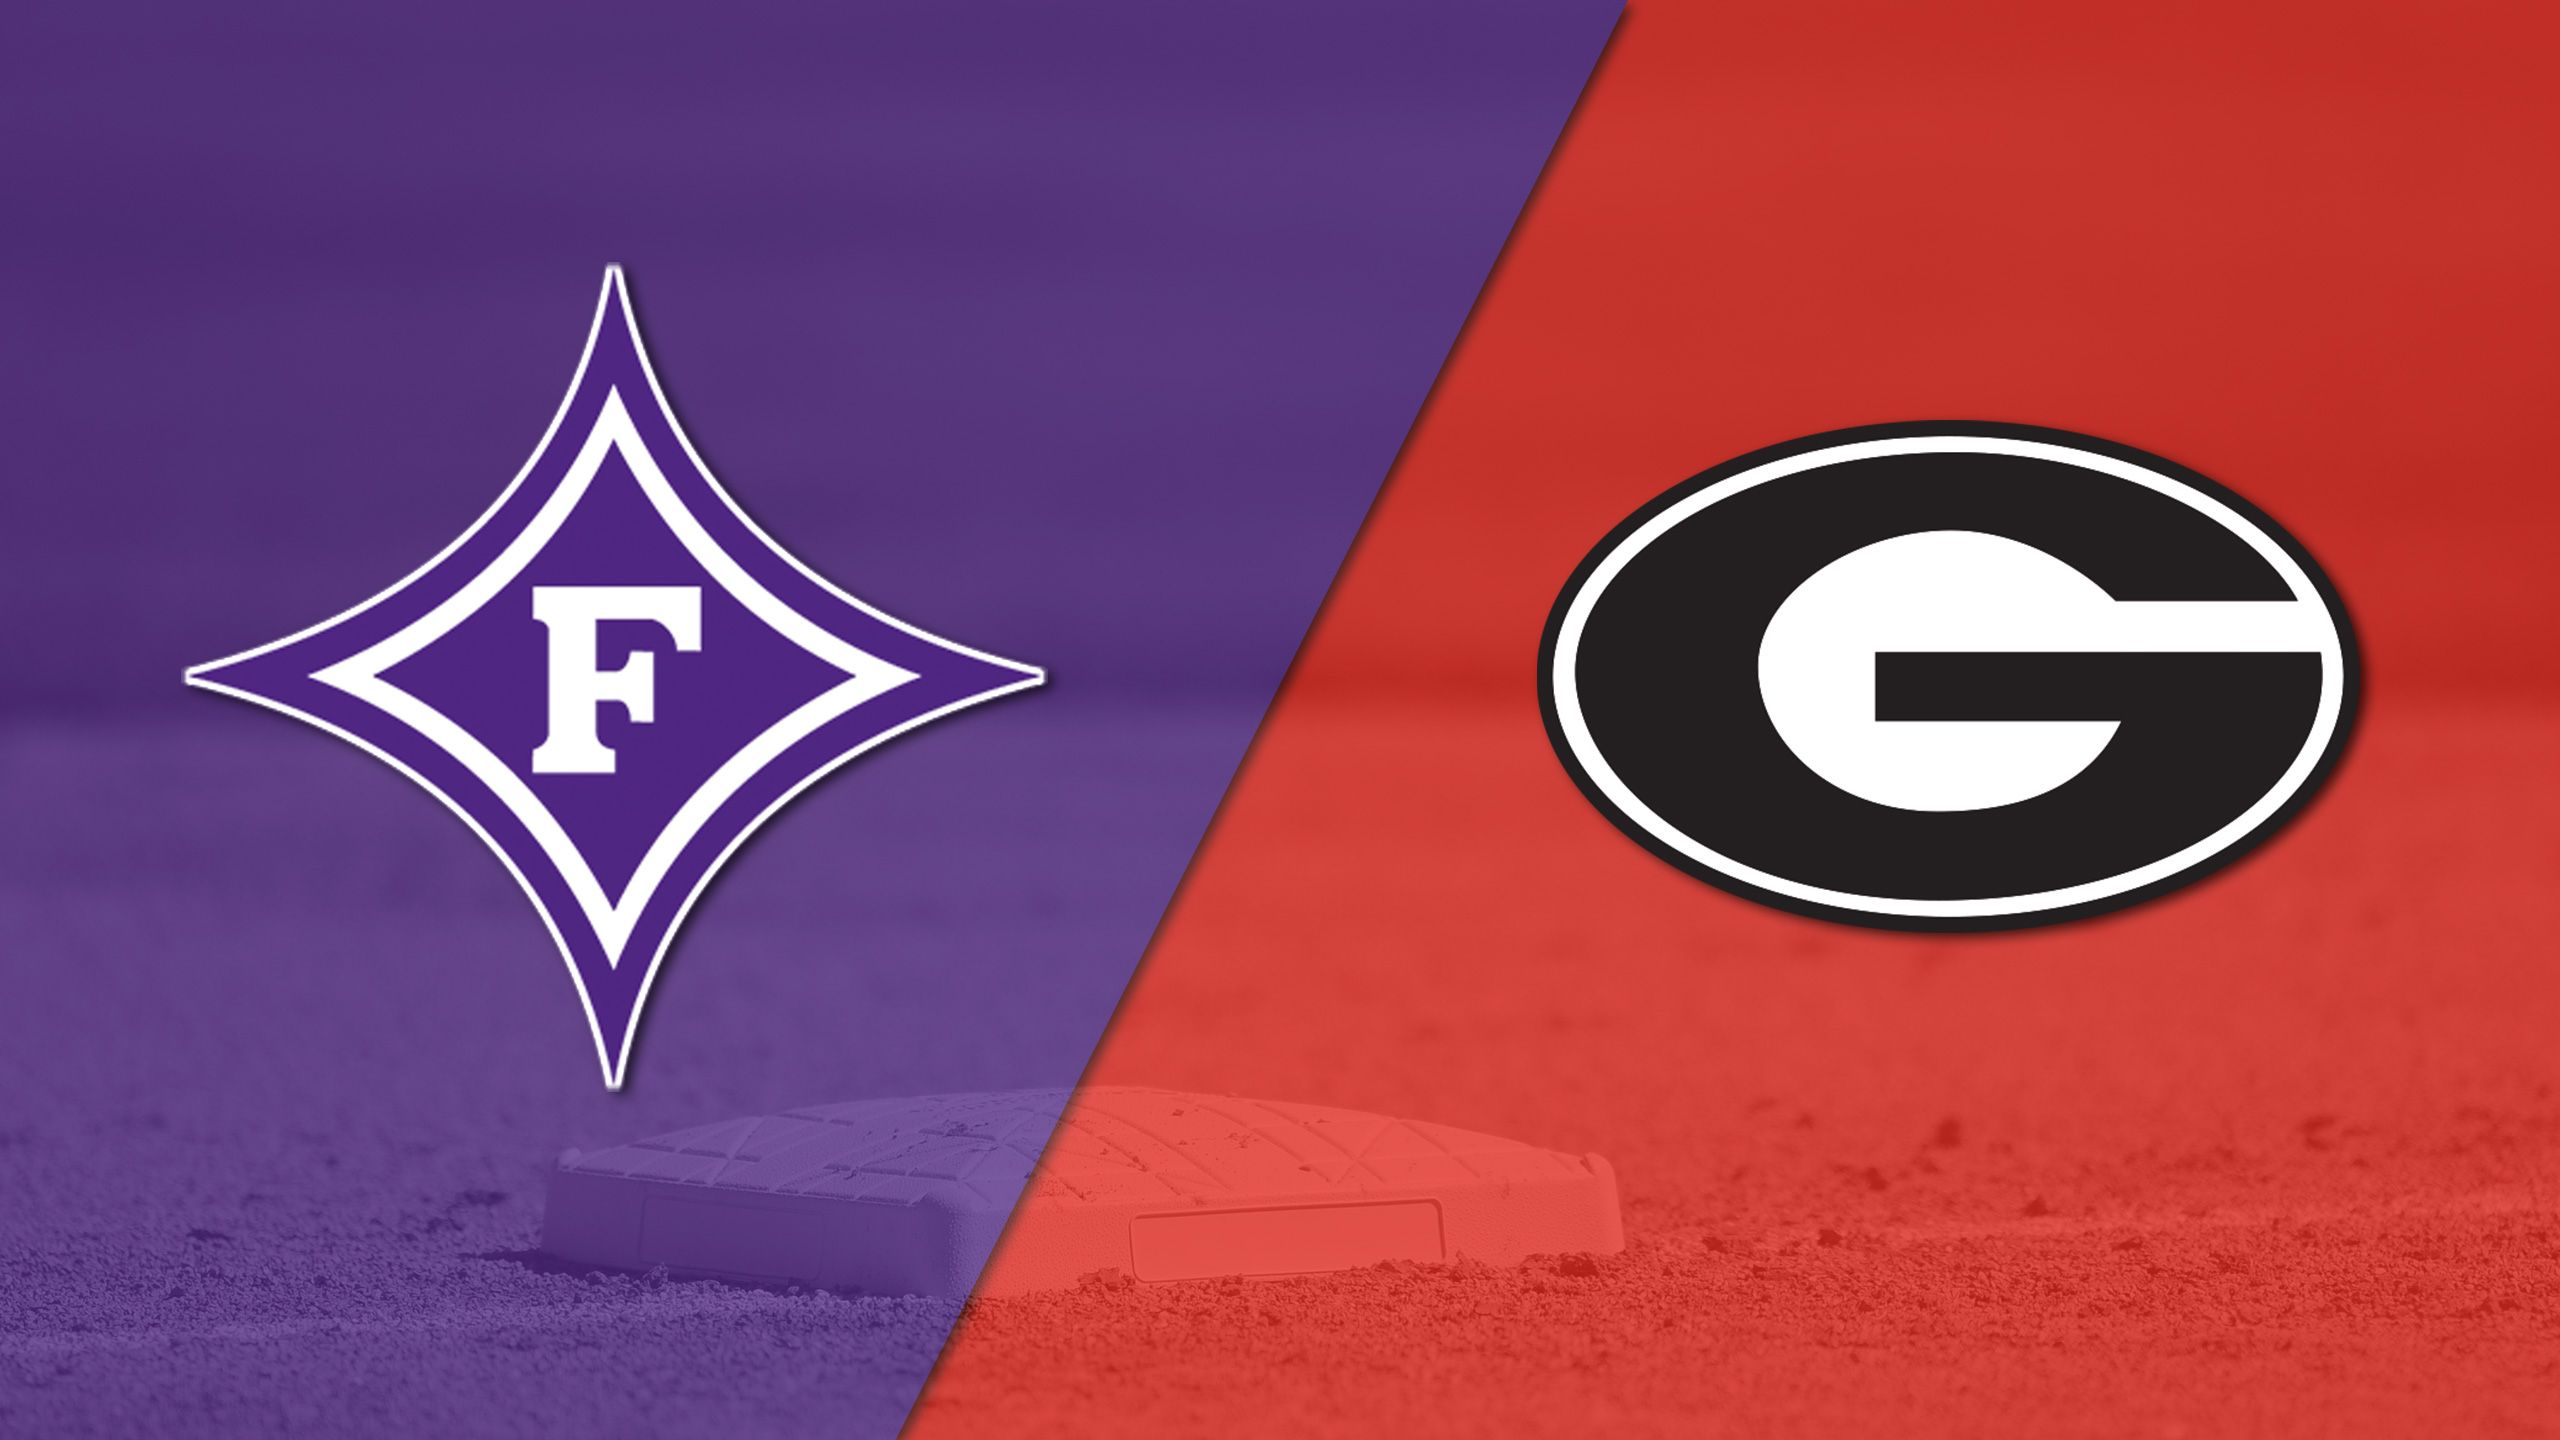 Furman vs. Georgia (Baseball)